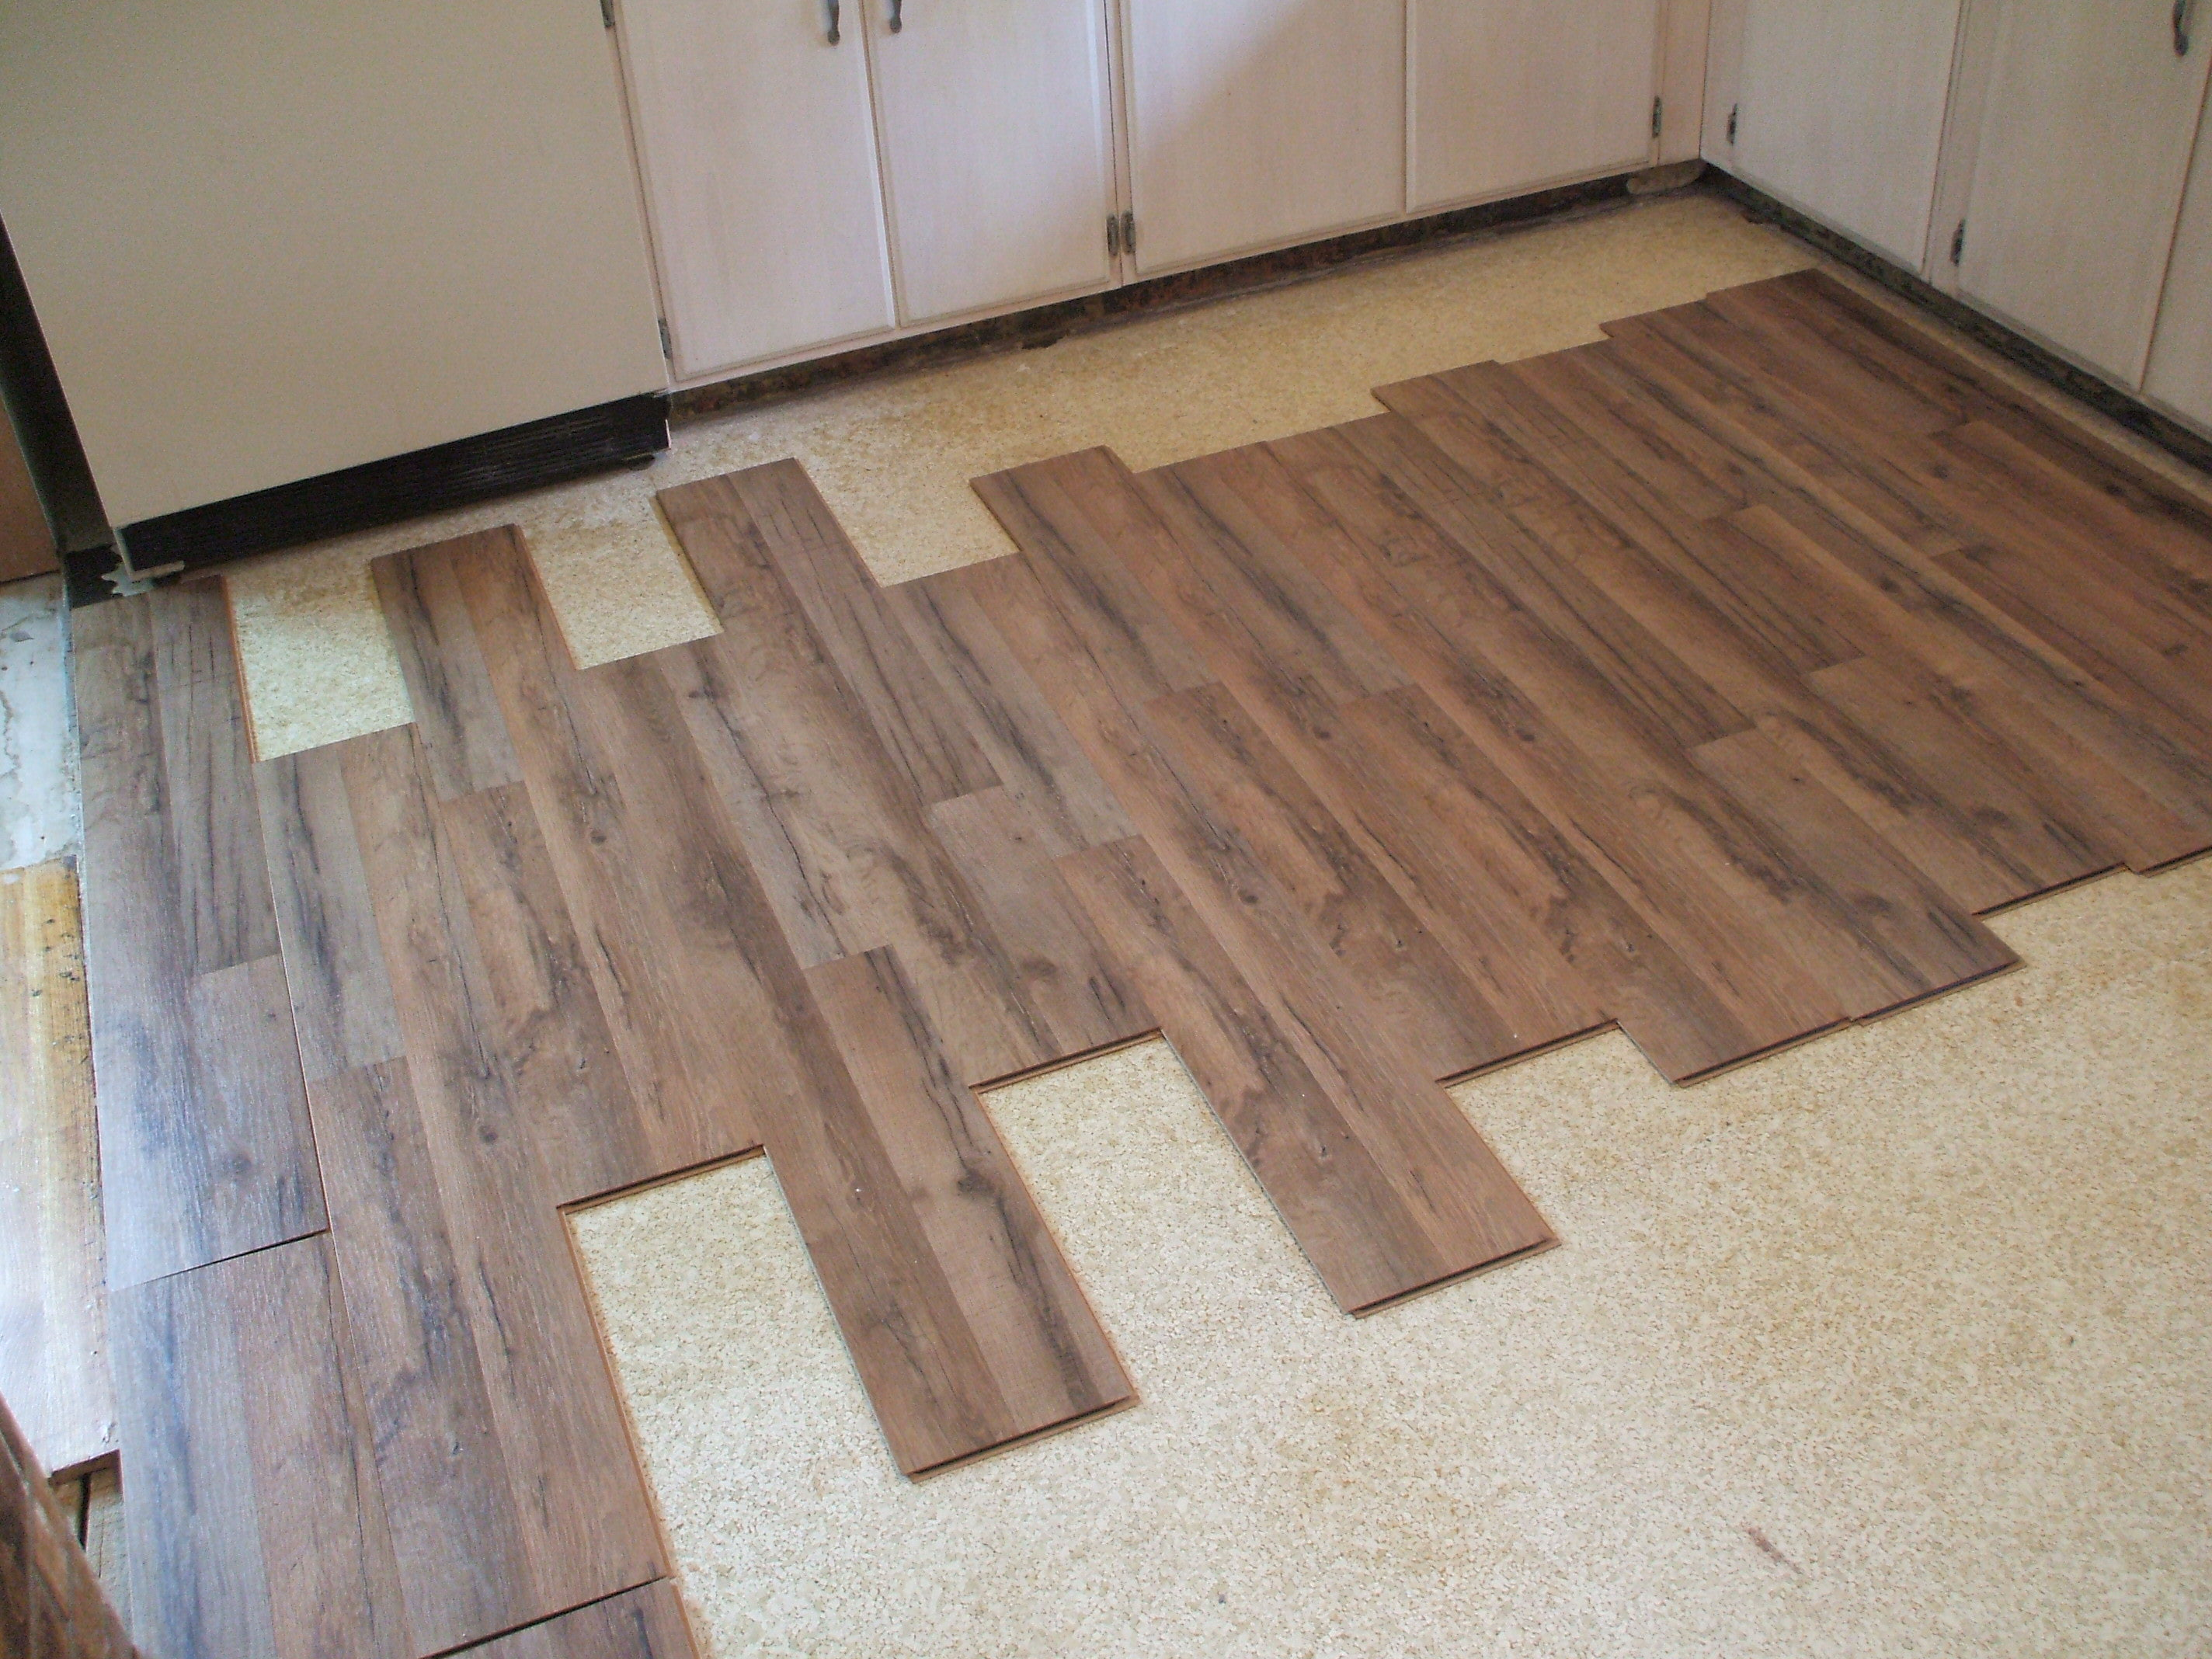 Best Kitchen Flooring Options Flooring Options For Your Rental Home Which Is Best